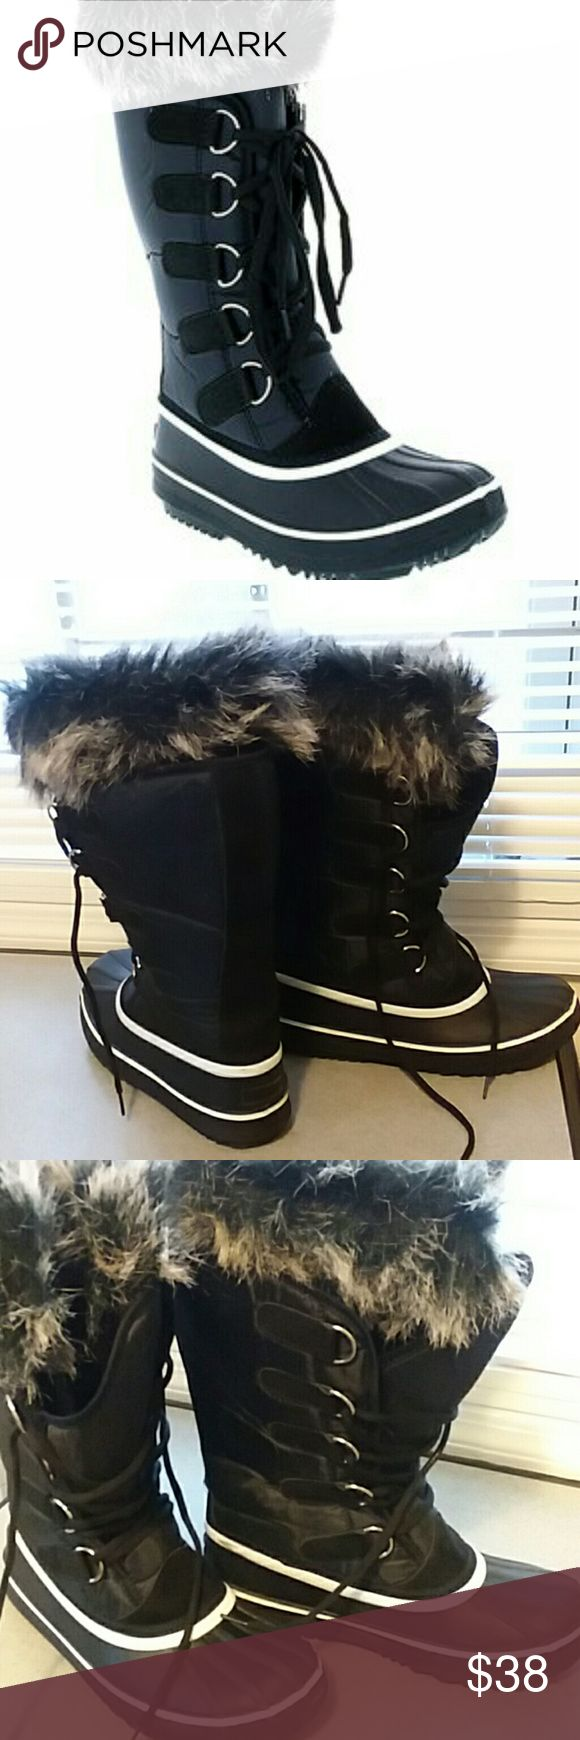 "BLACK FAUX FUR-LINED SCARLETT DUCK WINTER BOOTS BLACK FUR-LINED SCARLETT DUCK WINTER/RAIN BOOTS  👢11"" shaft 👢18"" circumference  👢Lace up boots 👢Man made 👢Imported 👢Removable inner piece  👢worn less than a doz times this winter Via Pinky Collection Shoes Winter & Rain Boots"